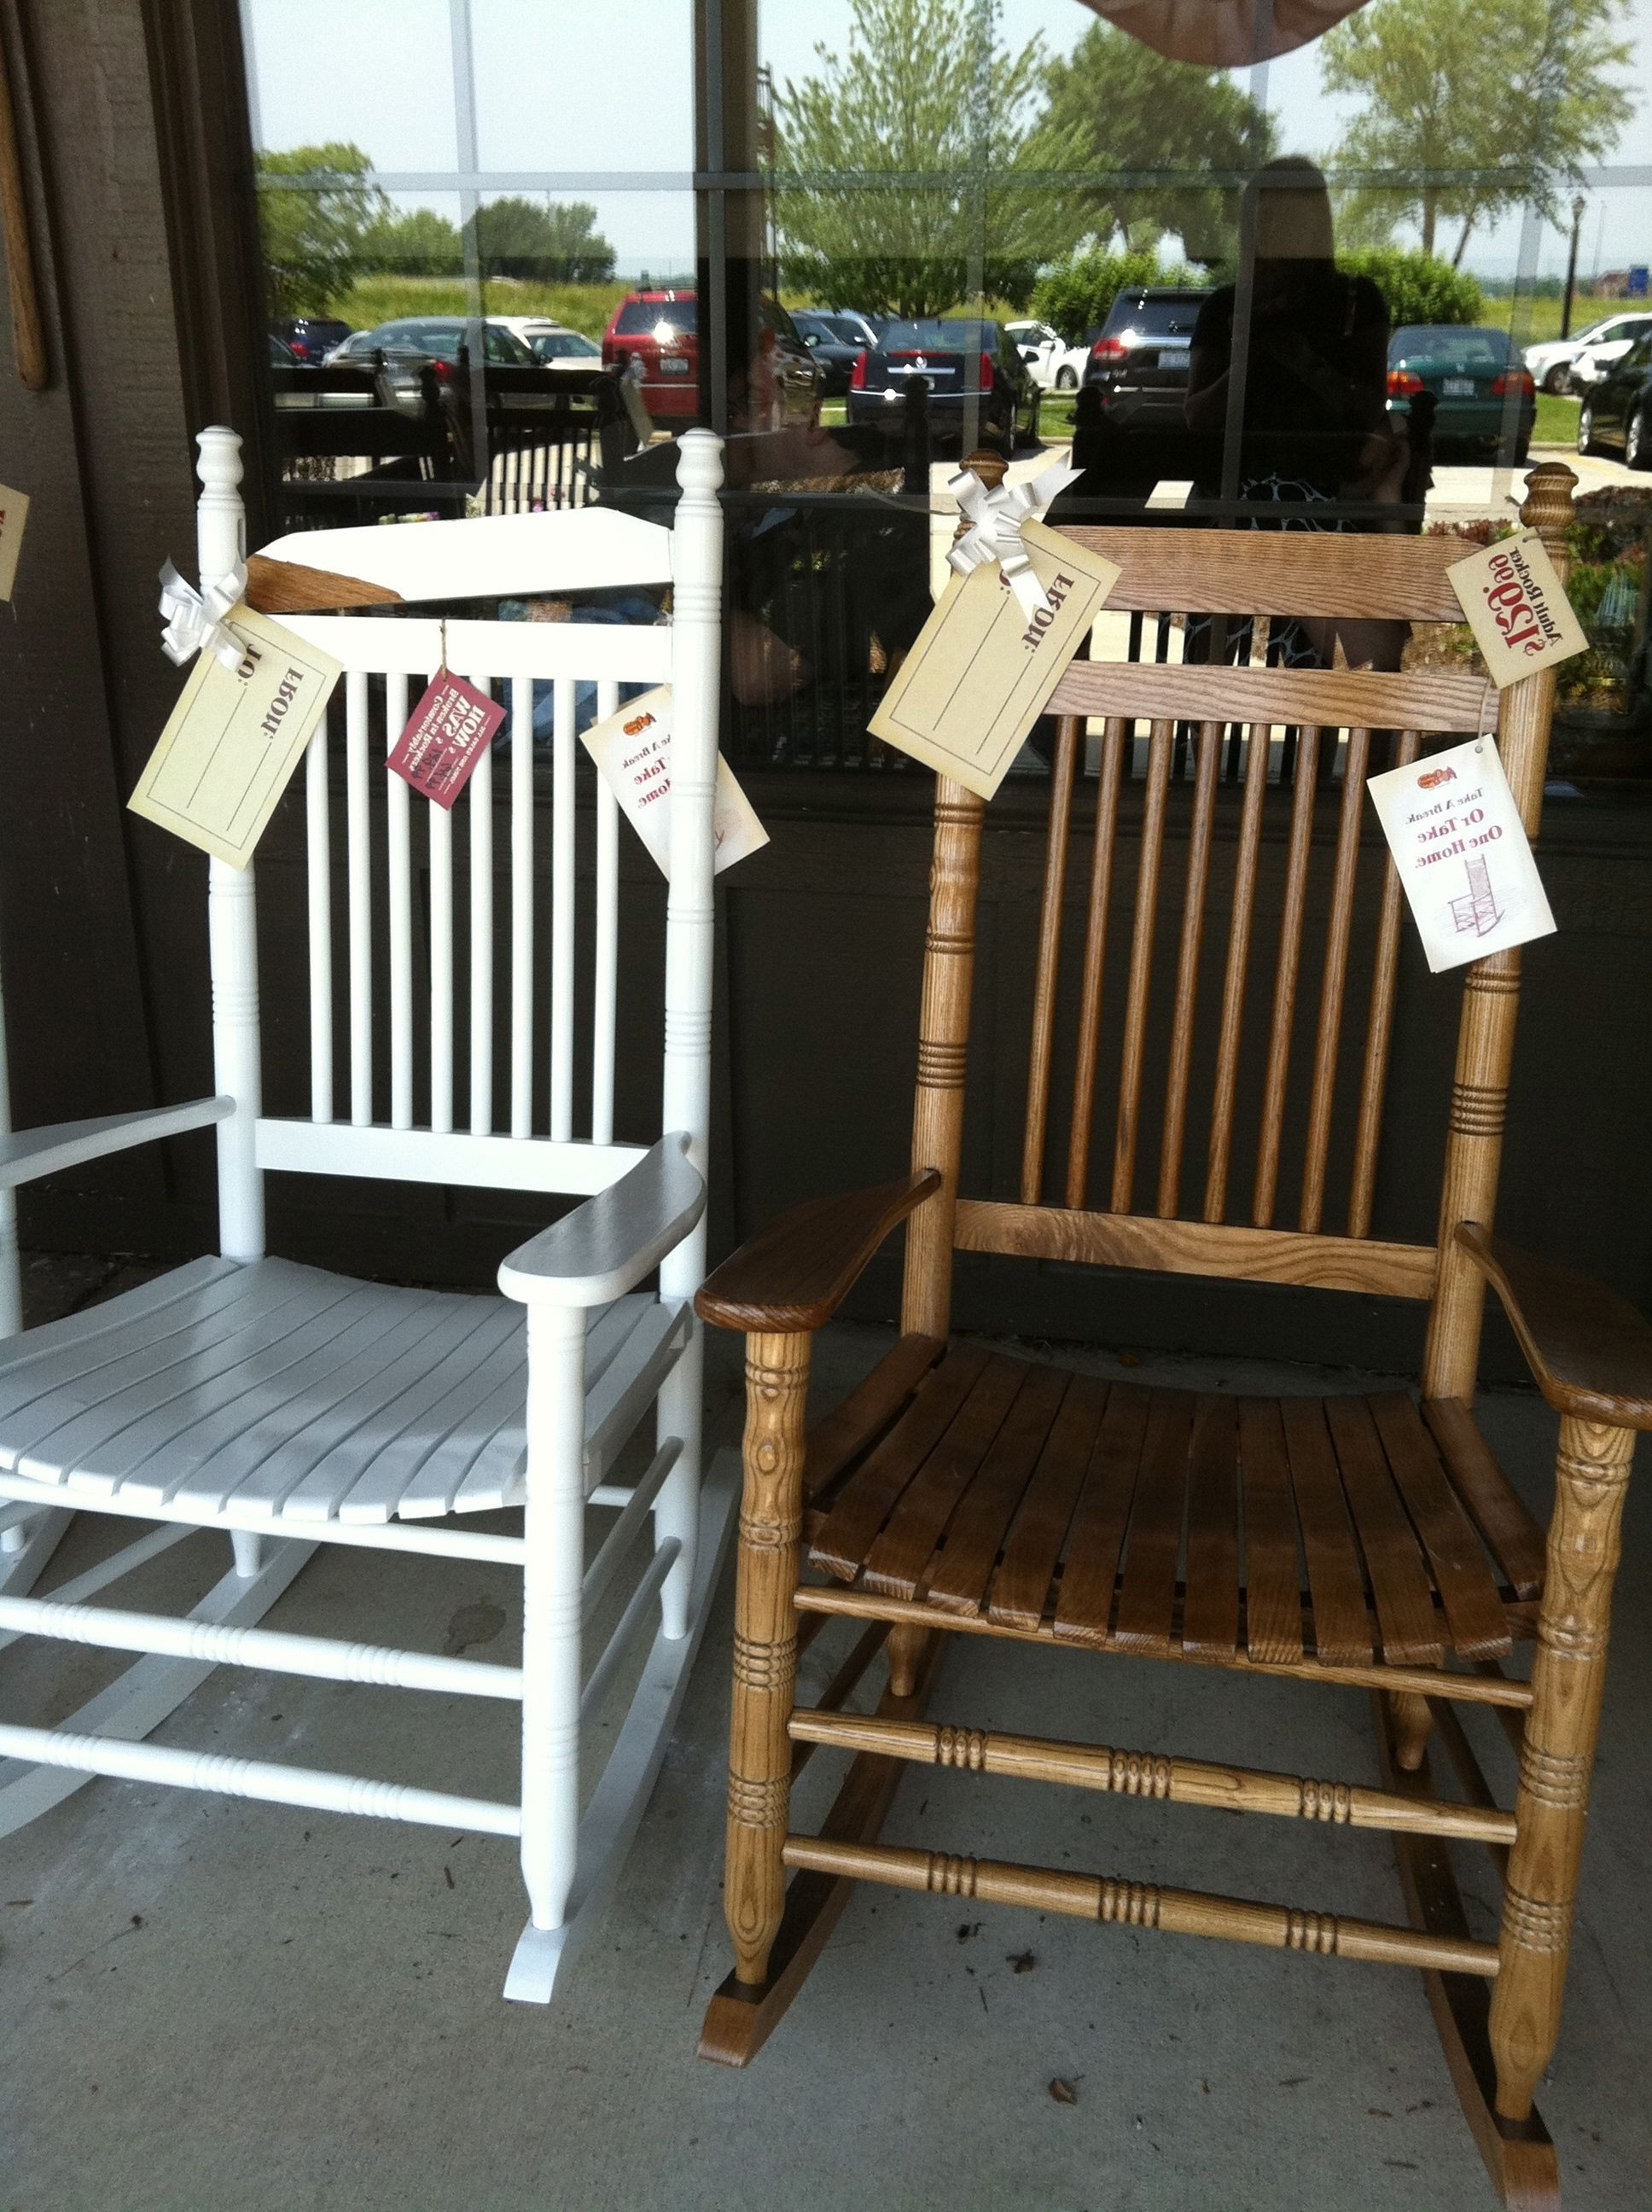 Most Popular Rocking Chairs At Cracker Barrel Intended For Beautiful Rocking Chairs At Cracker Barrel – Aleadecor (View 2 of 15)